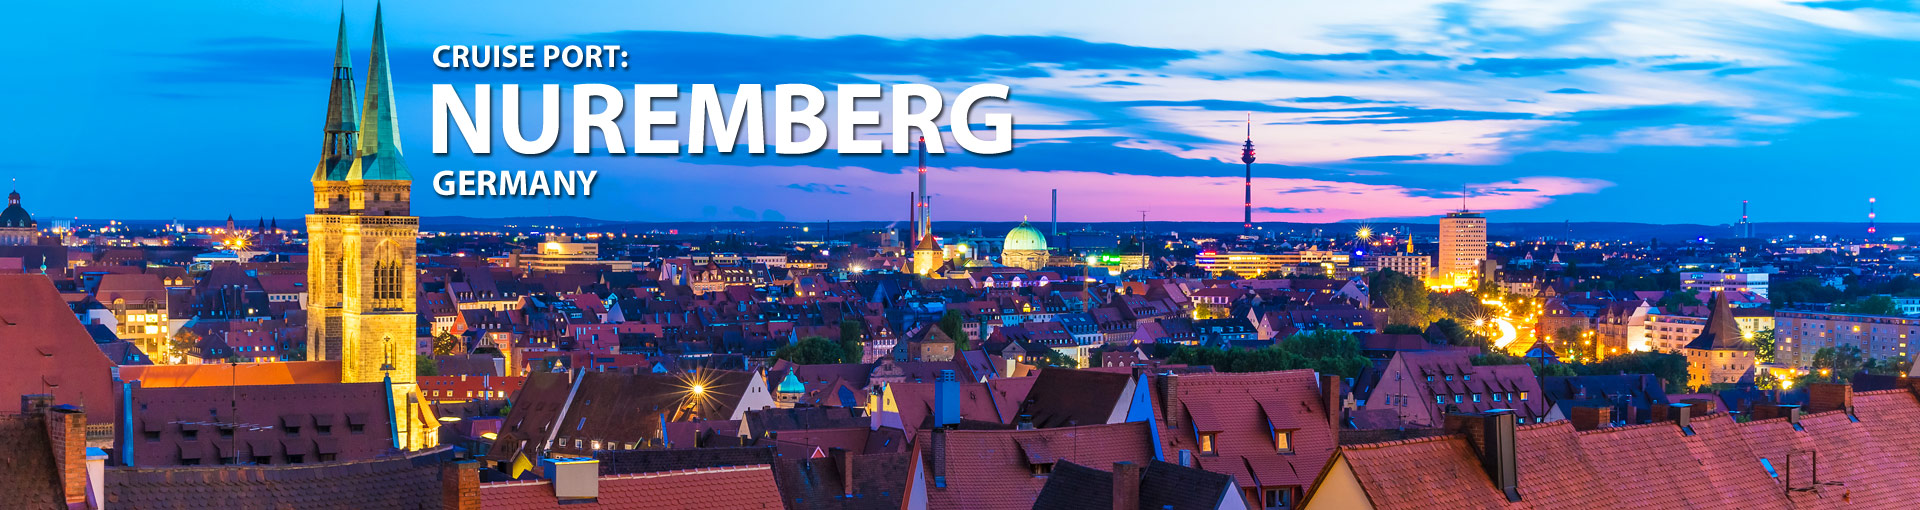 Cruises from Nuremberg, Germany